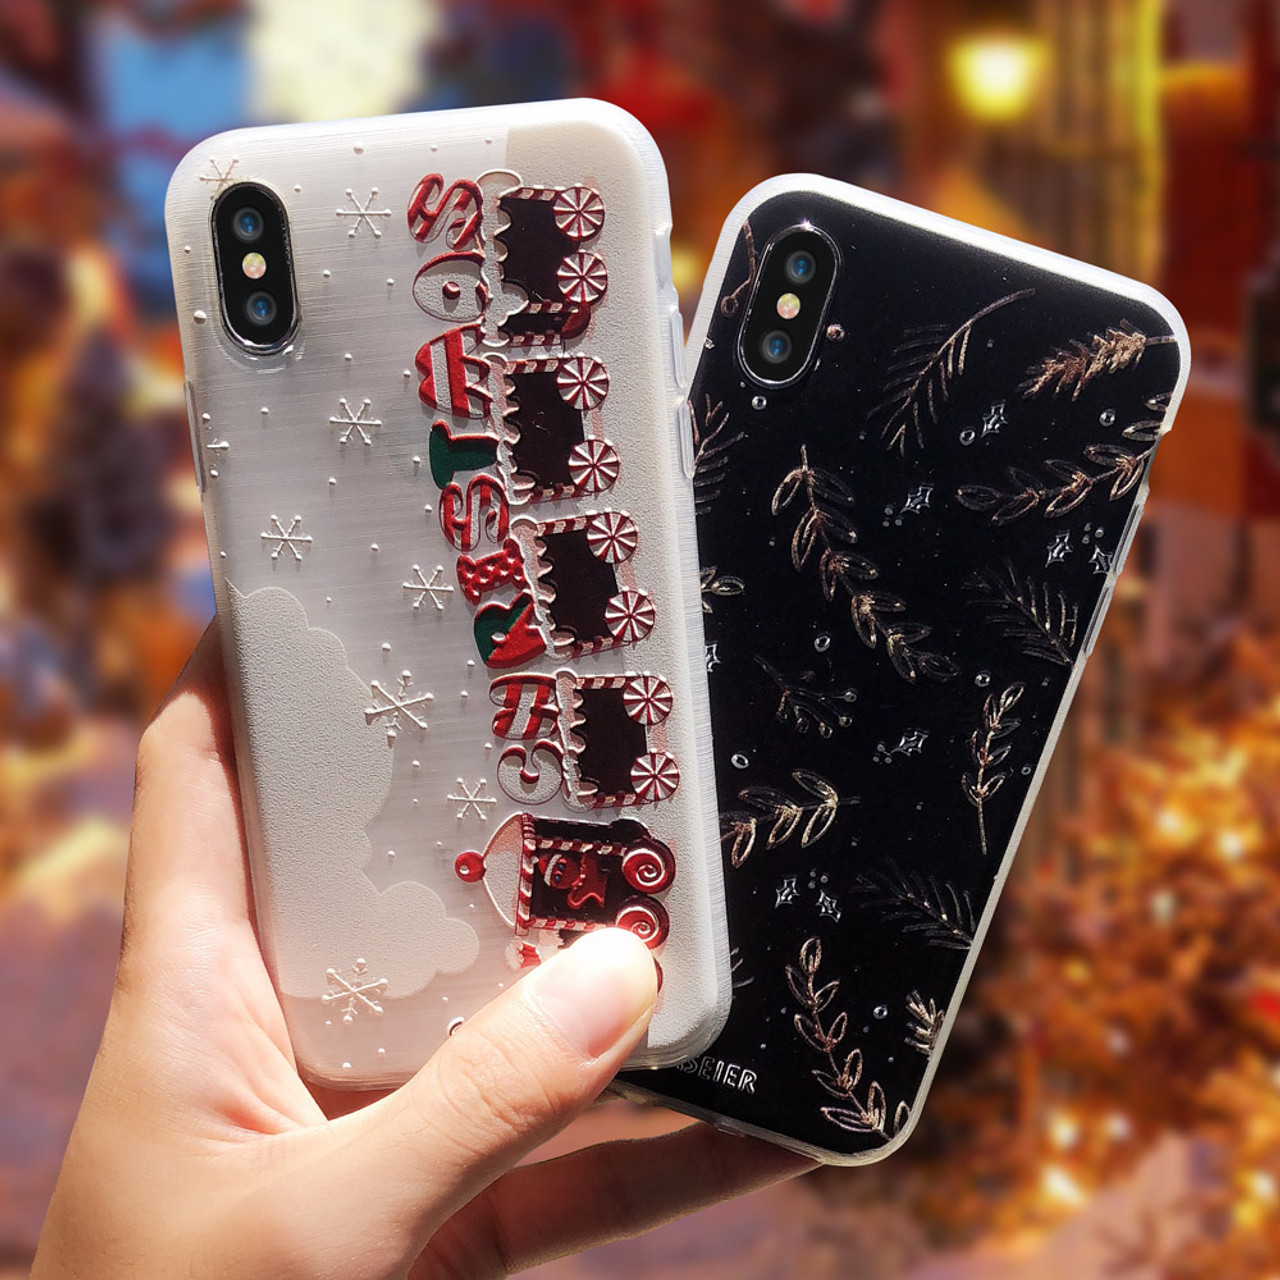 Christmas Phone Case.Caseier Girly Christmas Phone Case For Iphone 5 Se 6 6s 7 8 Plus X Cute Emboss Soft Tpu Covers For Iphone X Xs Max Xr 5s 7 Plus